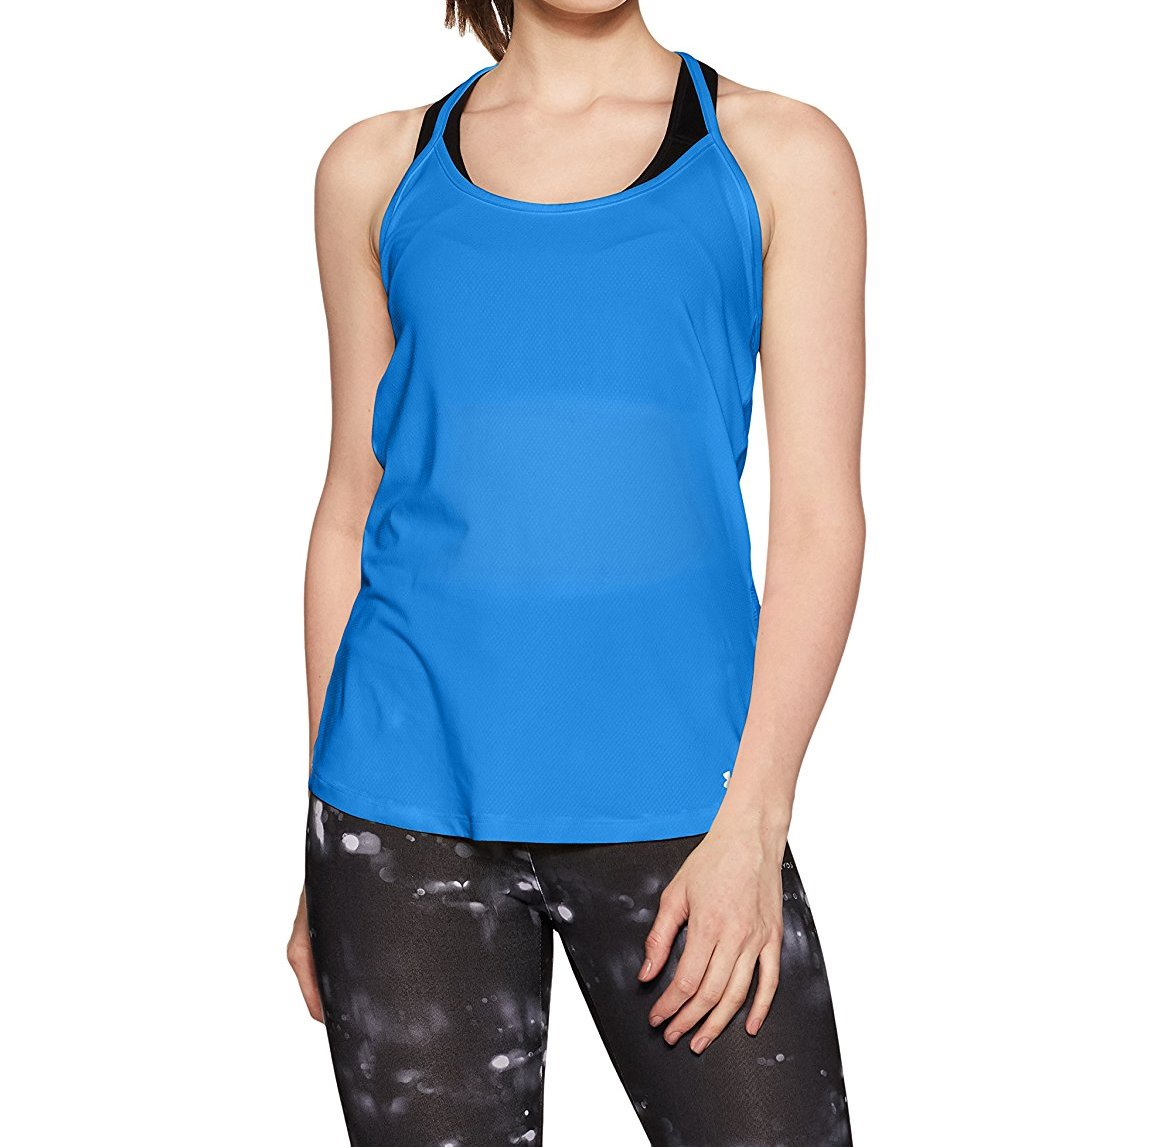 6ce855c35e8bb Details about Under Armour Womens Fly-By Racerback Top  Mediterranean Reflective